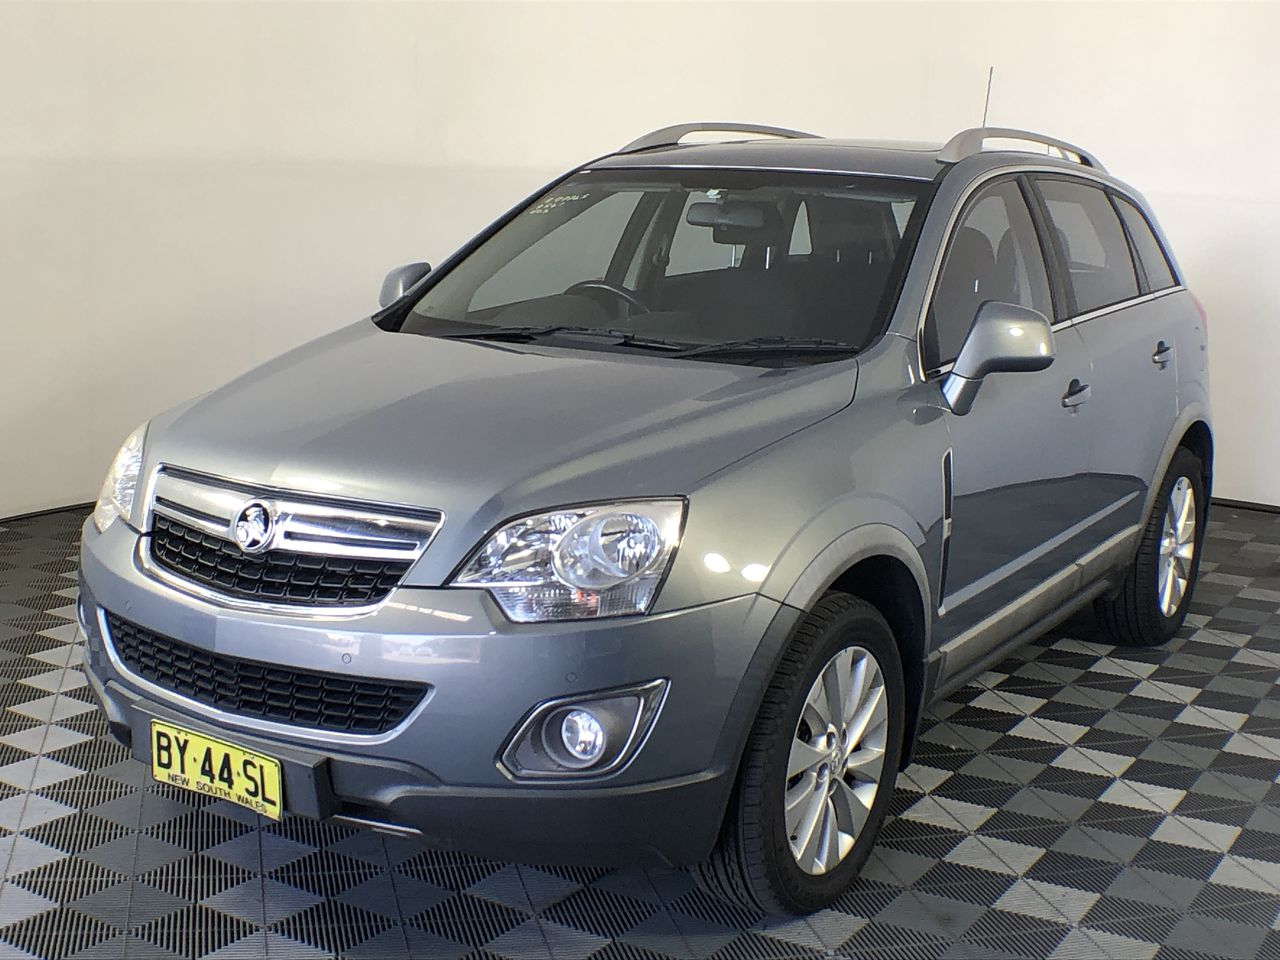 2013 Holden Captiva 5 LT AWD CG II Turbo Diesel Automatic Wagon